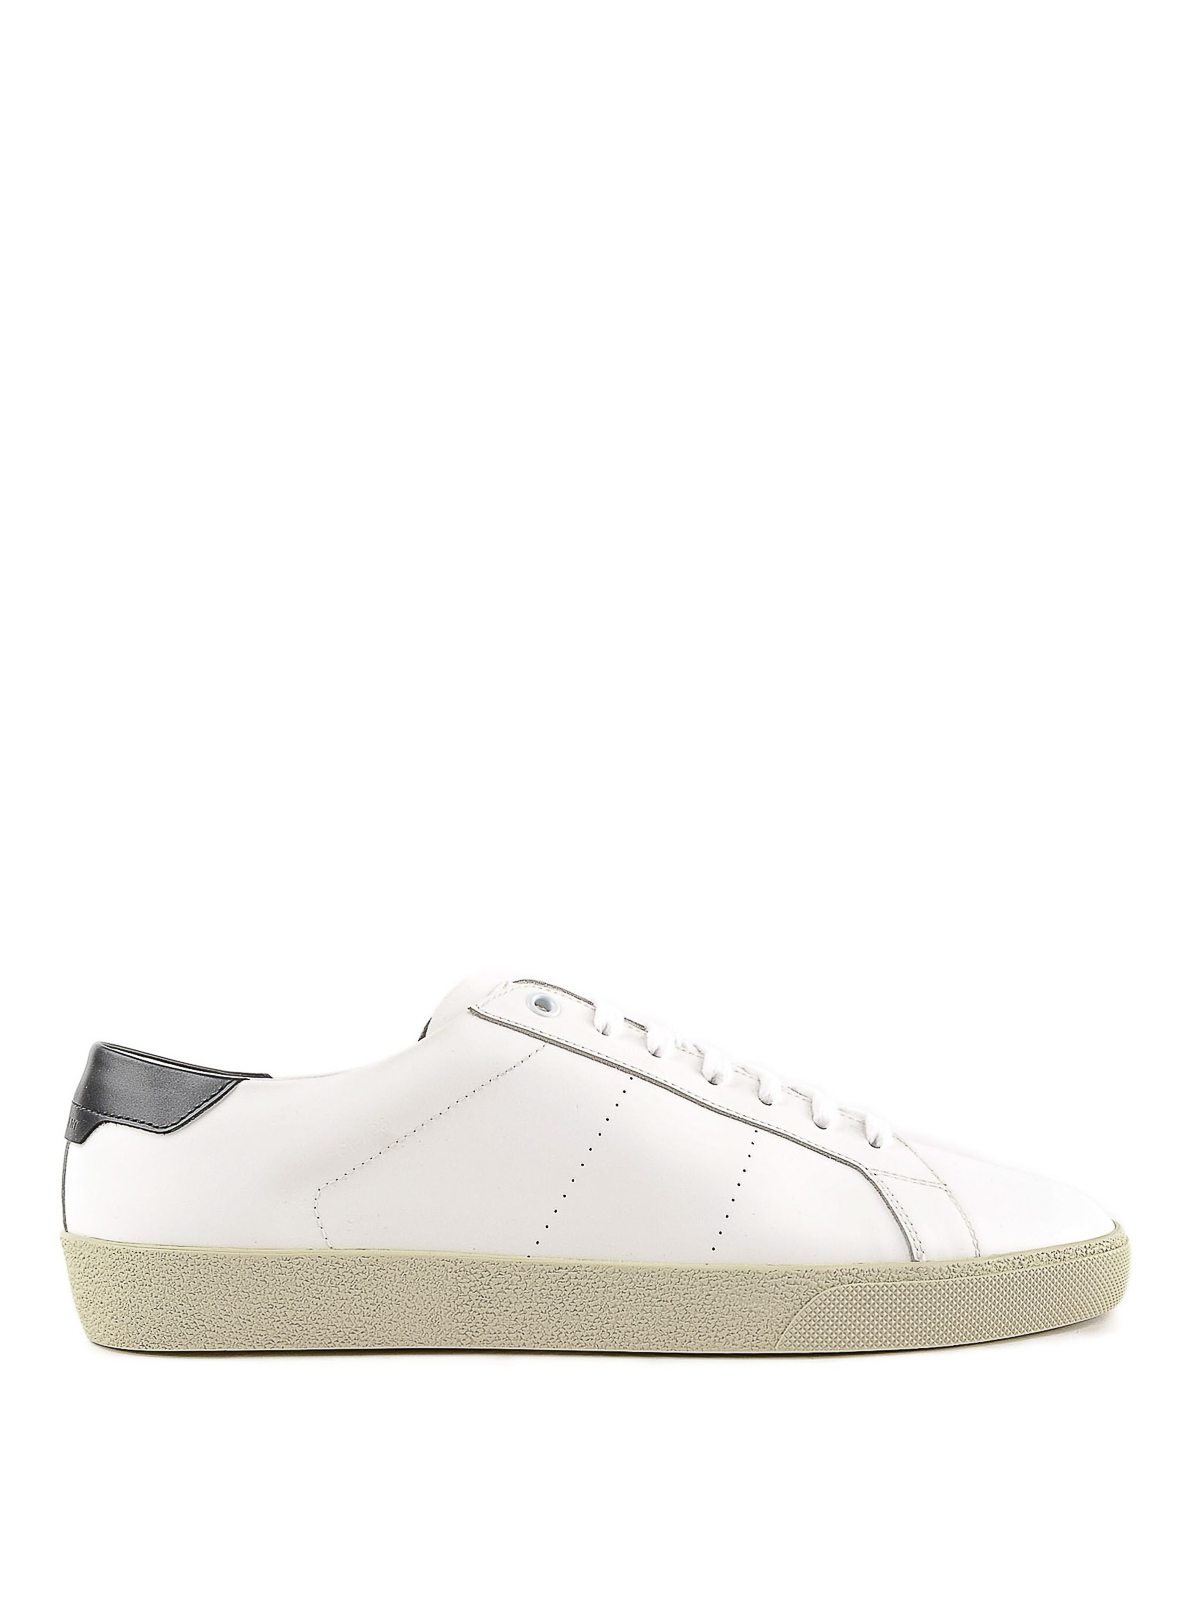 4ba37a5acb83 Saint Laurent - Signature white glossy leather sneakers - trainers ...